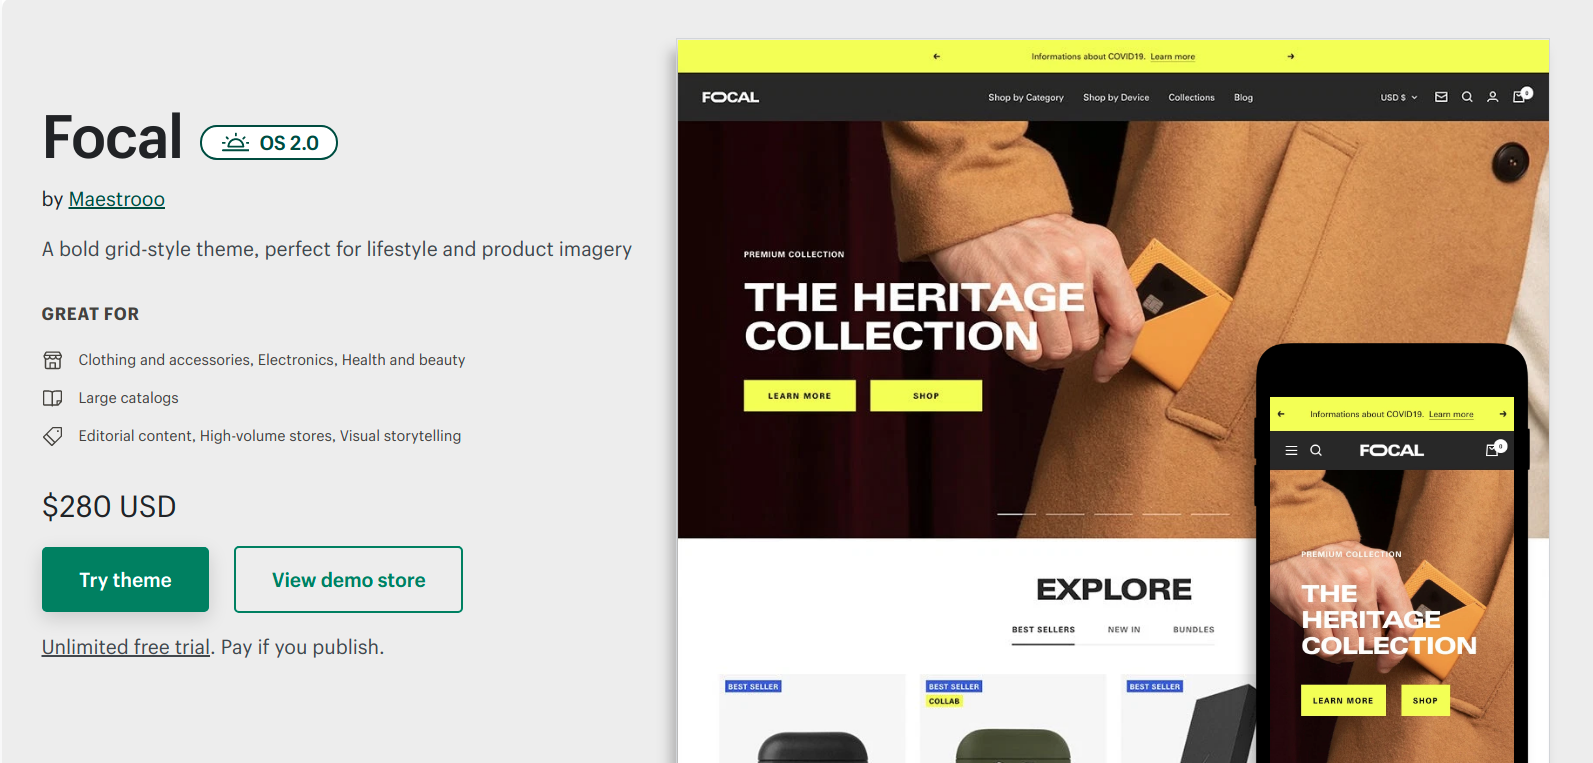 focal-online-store-2-shopify-theme